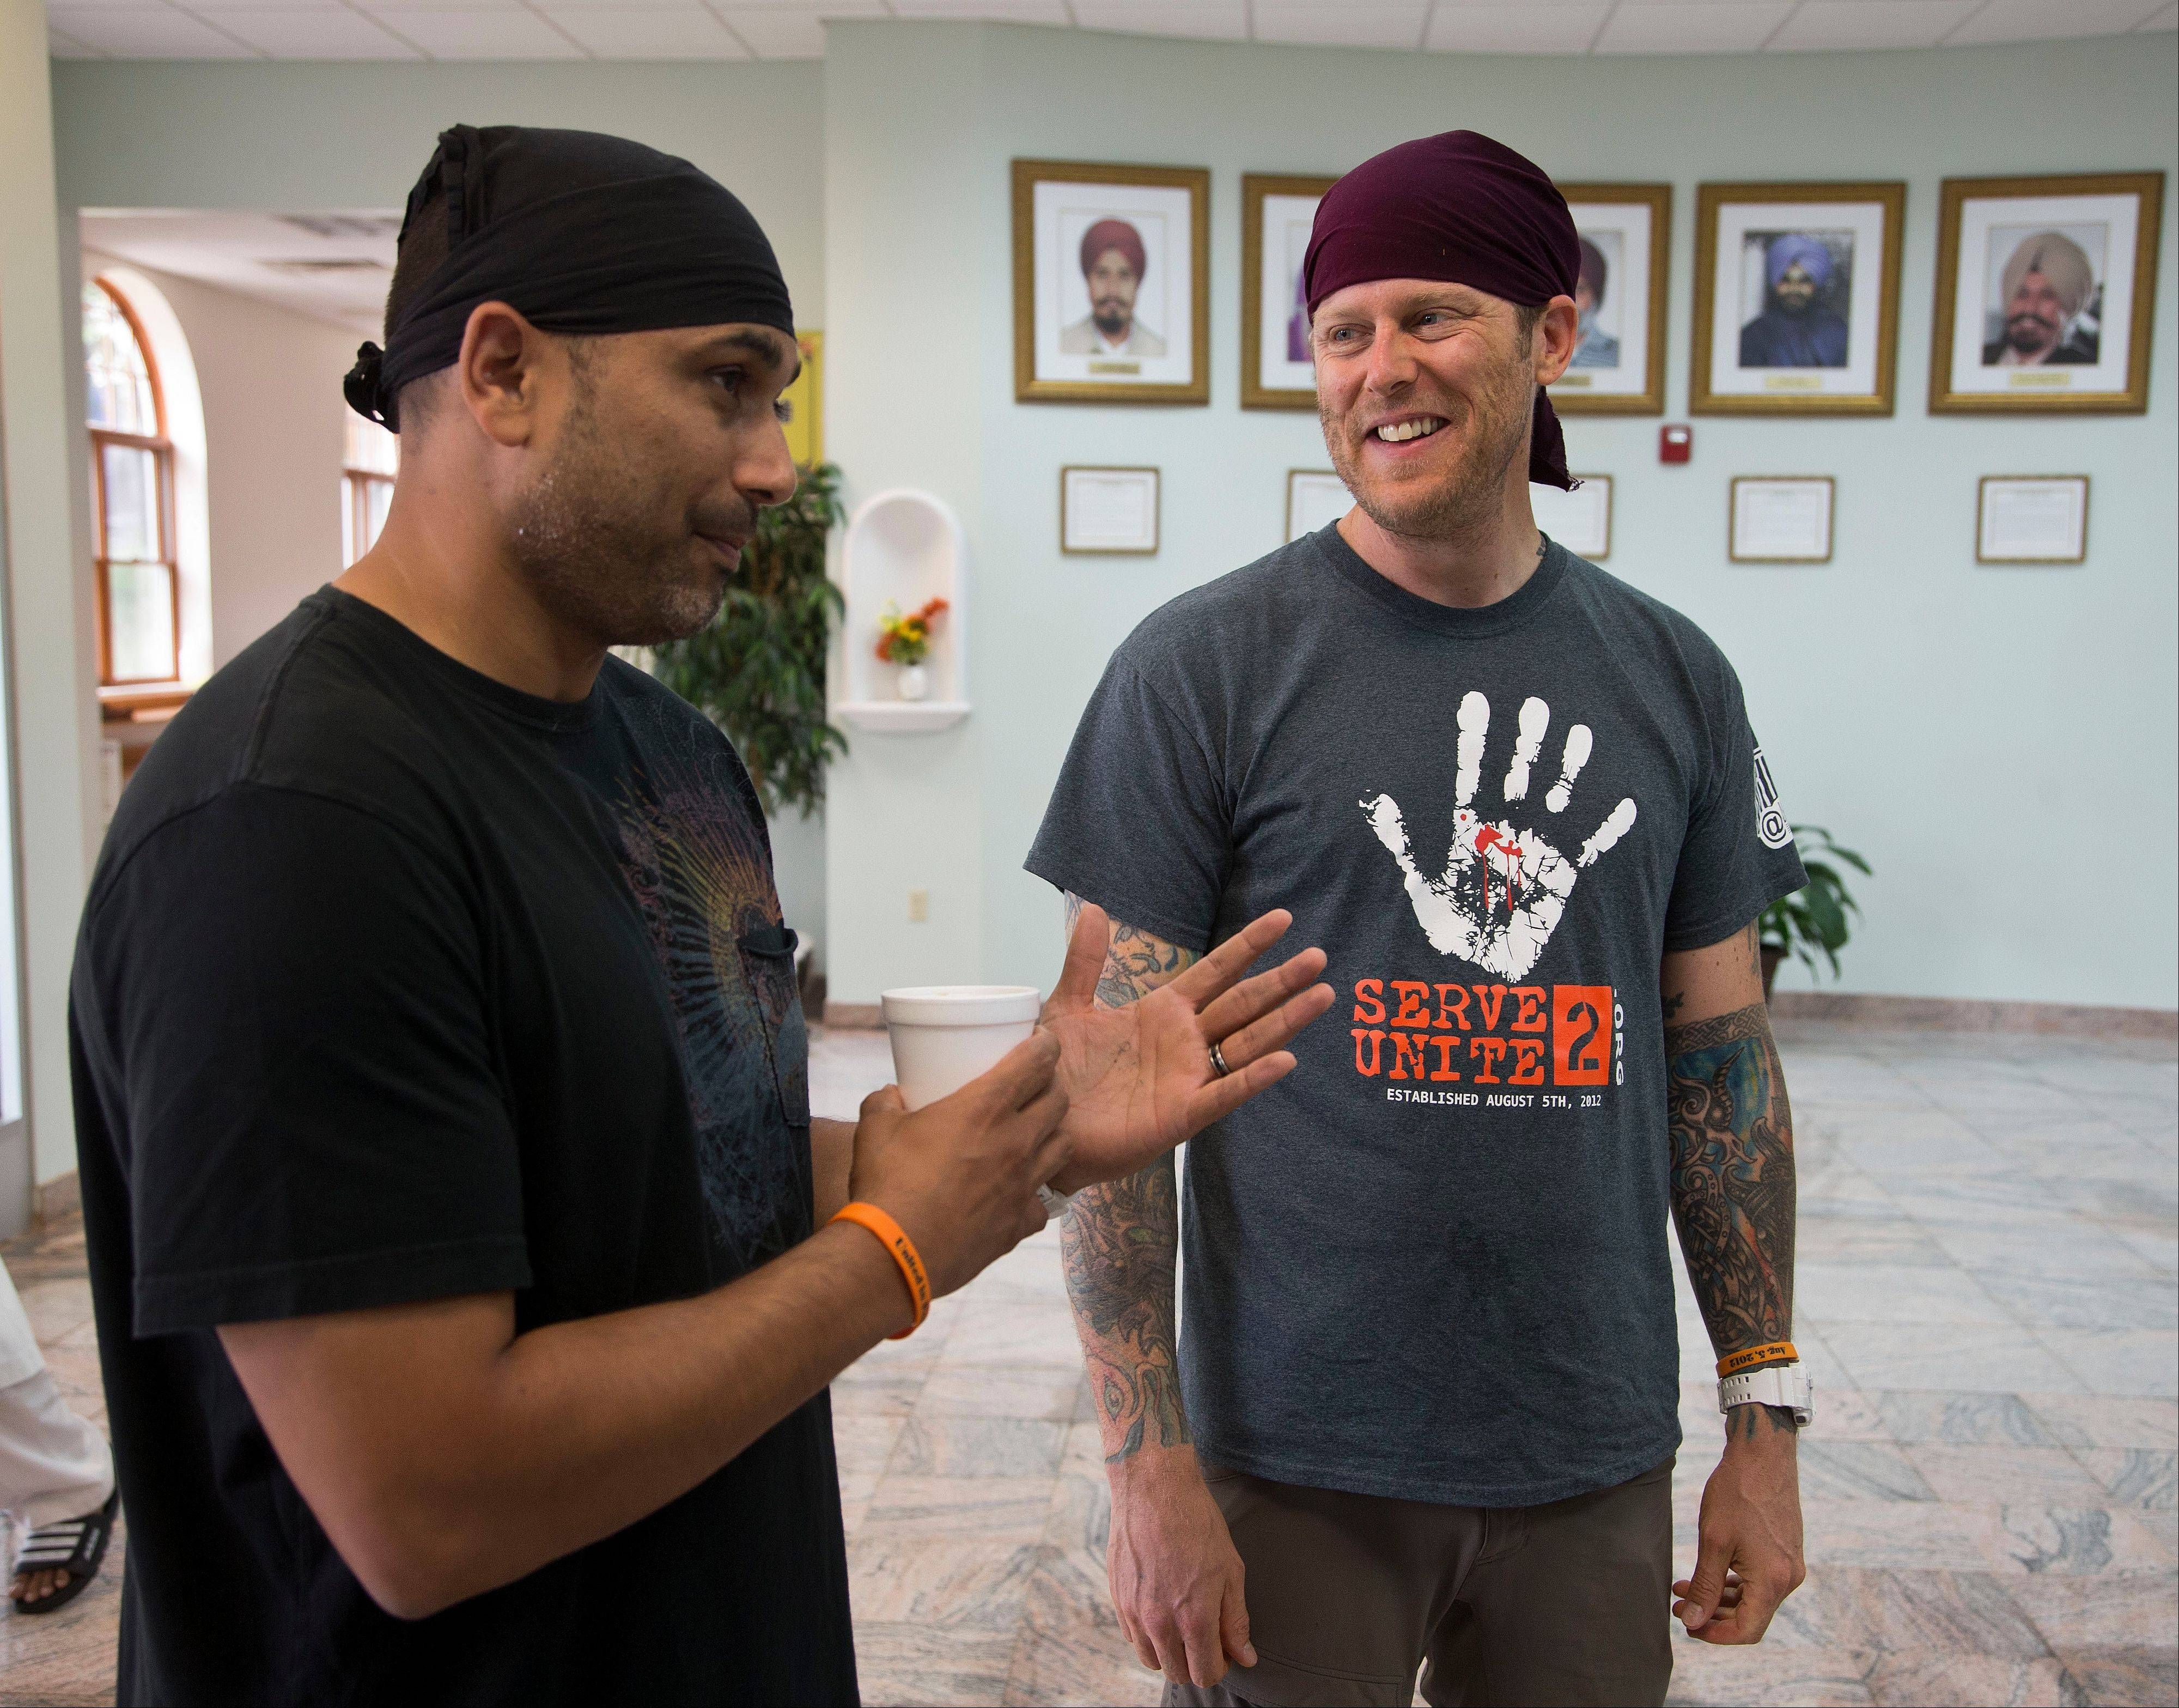 Pardeep Kaleka, left, and Arno Michaelis talk at the Sikh Temple of Wisconsin in Oak Creek, Wis. A year ago a white supremacist shot and killed six temple members, including Kaleka�s father.